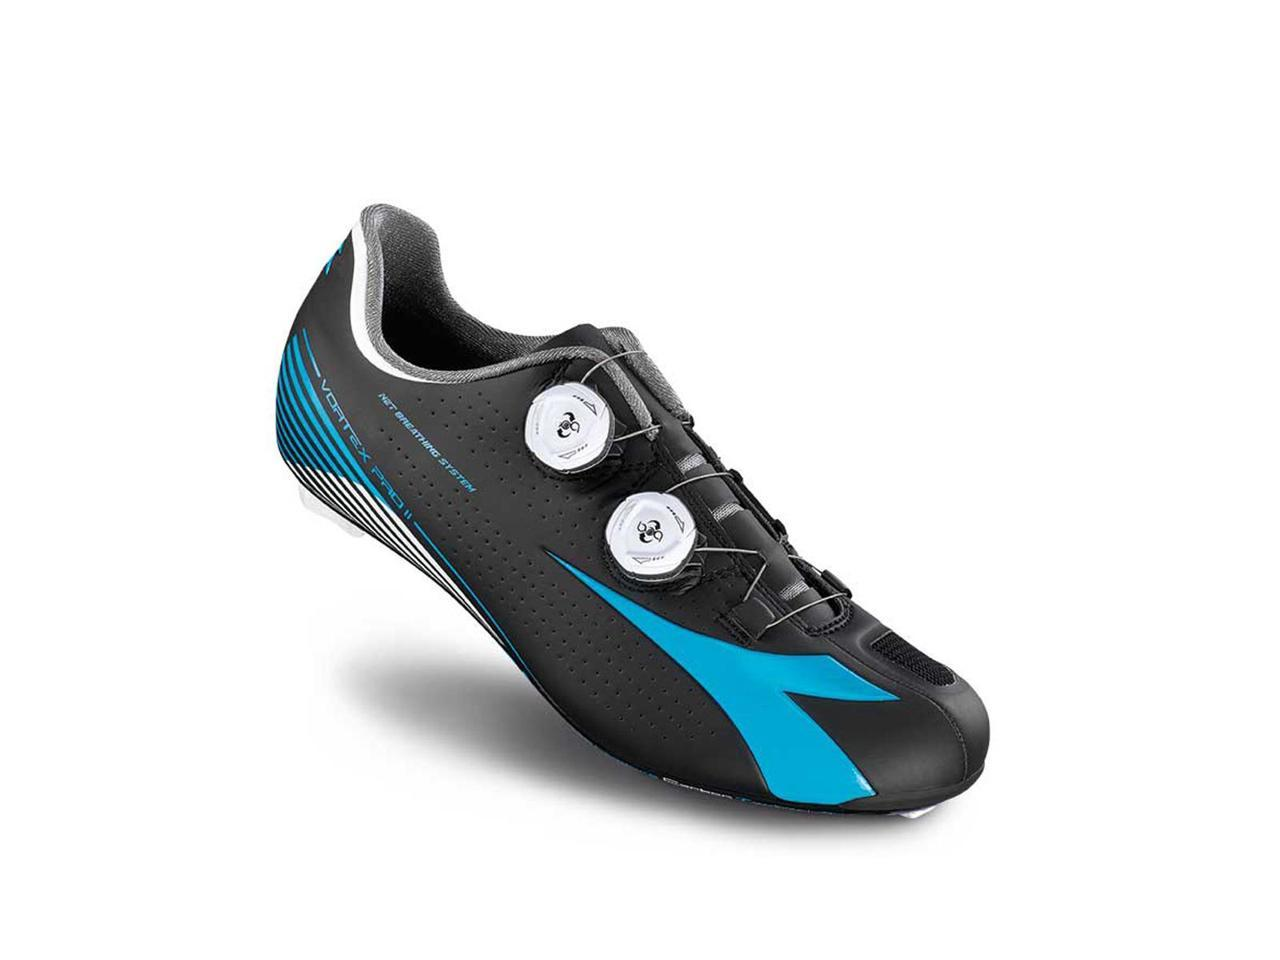 Diadora 2016 Men's Vortex Pro - II Road Cycling Shoe - Pro 170216-C6013 (Black/ Fluo Blue/White - 40) 3d9fd4